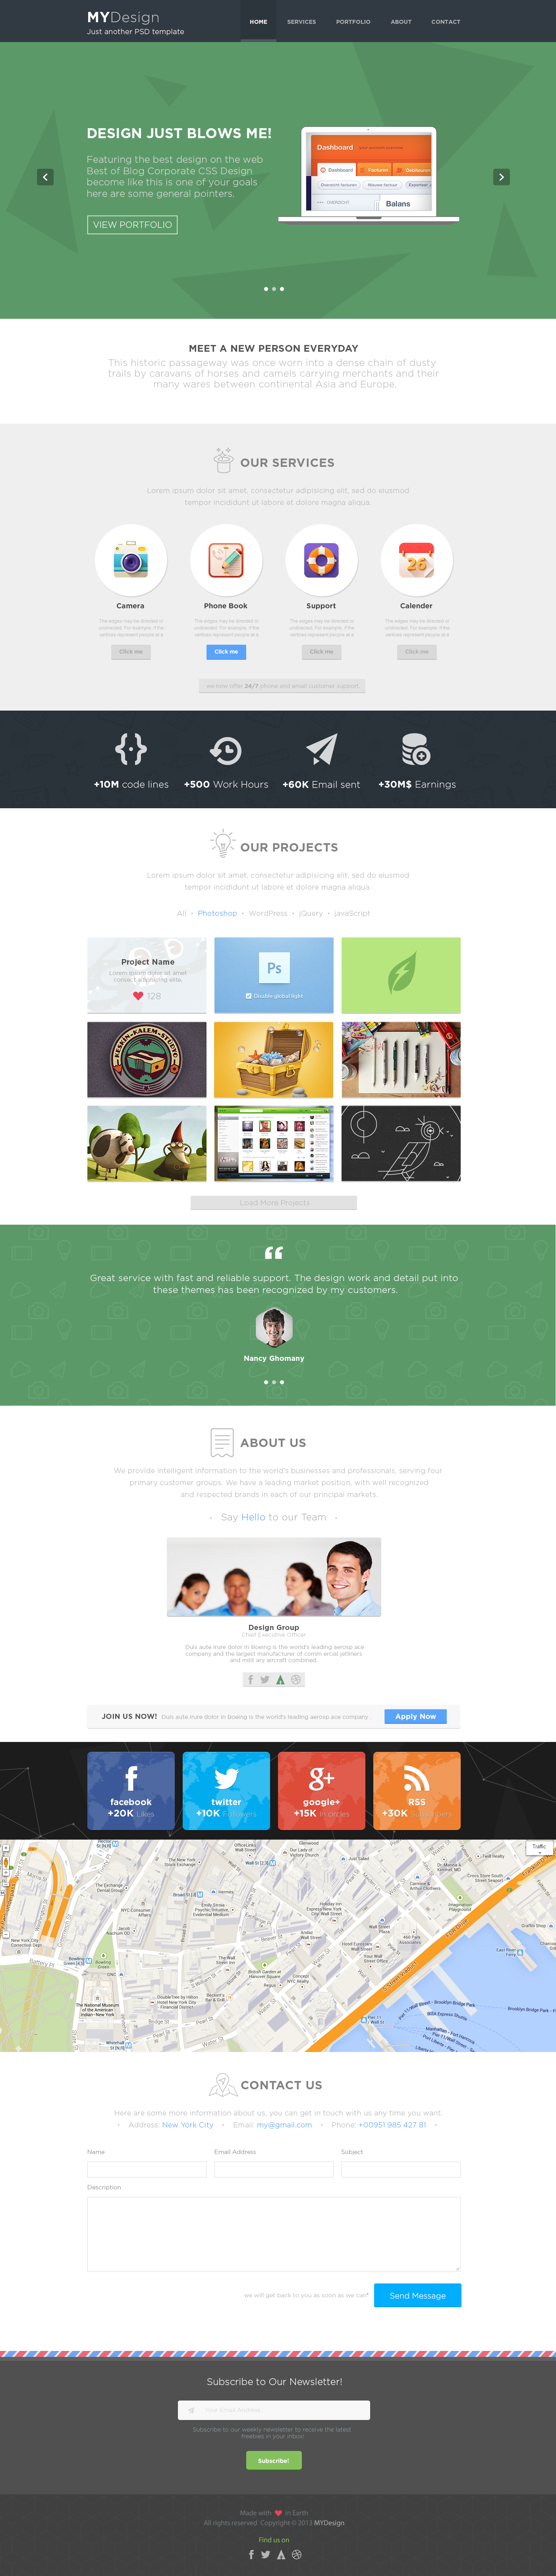 mydesign onepage multipurpose flat html template by pixfort